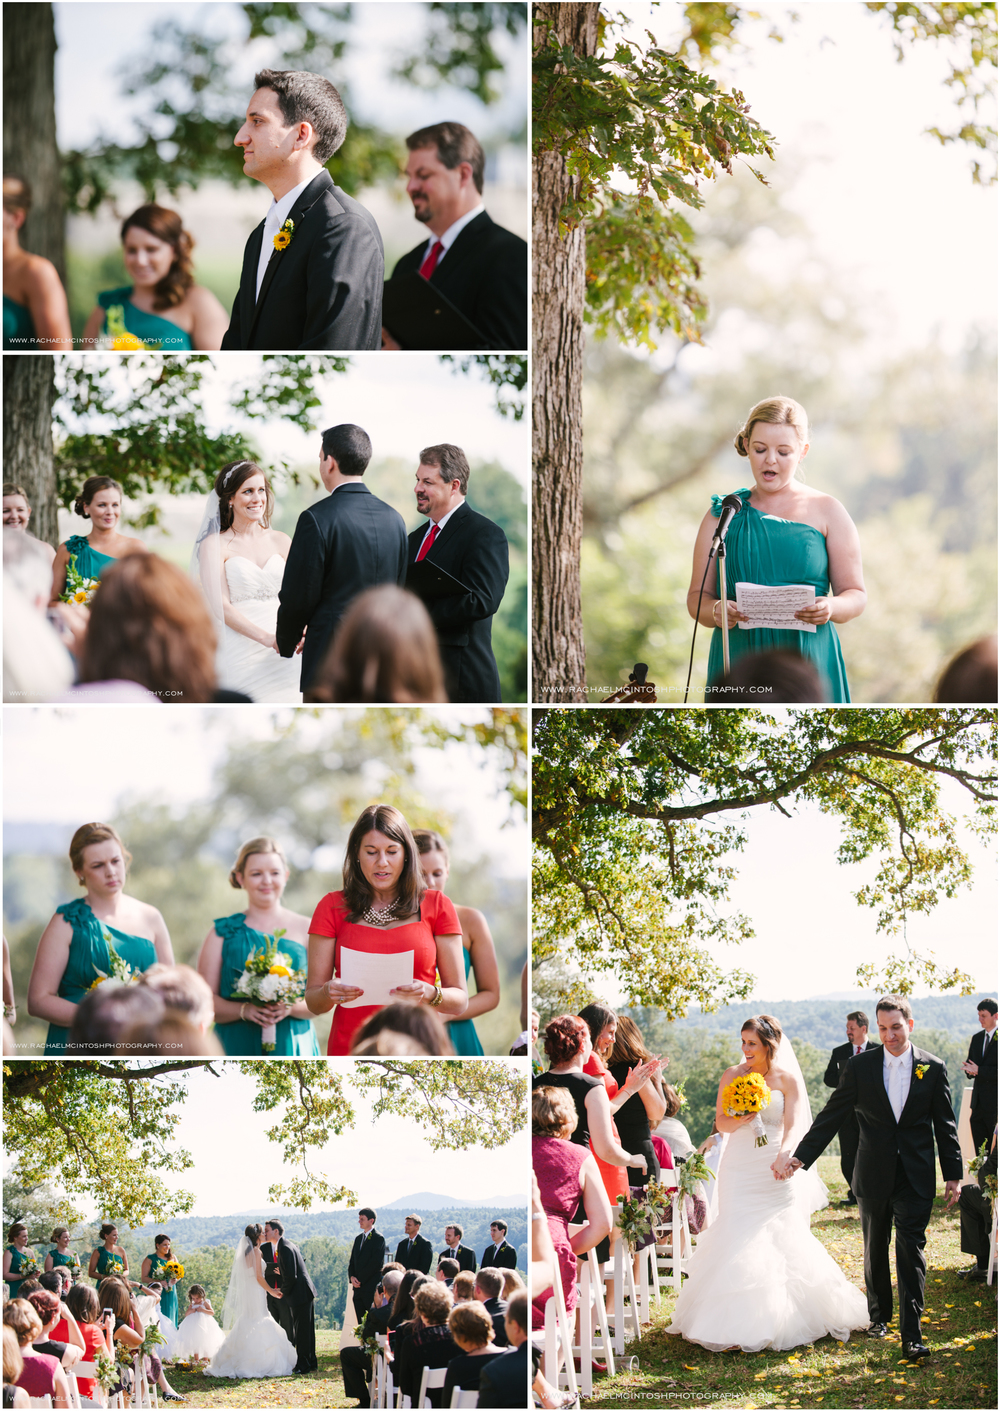 Asheville Wedding Photographer-Crest Center Wedding-Erin & Brian's Biltmore Wedding 43.jpg